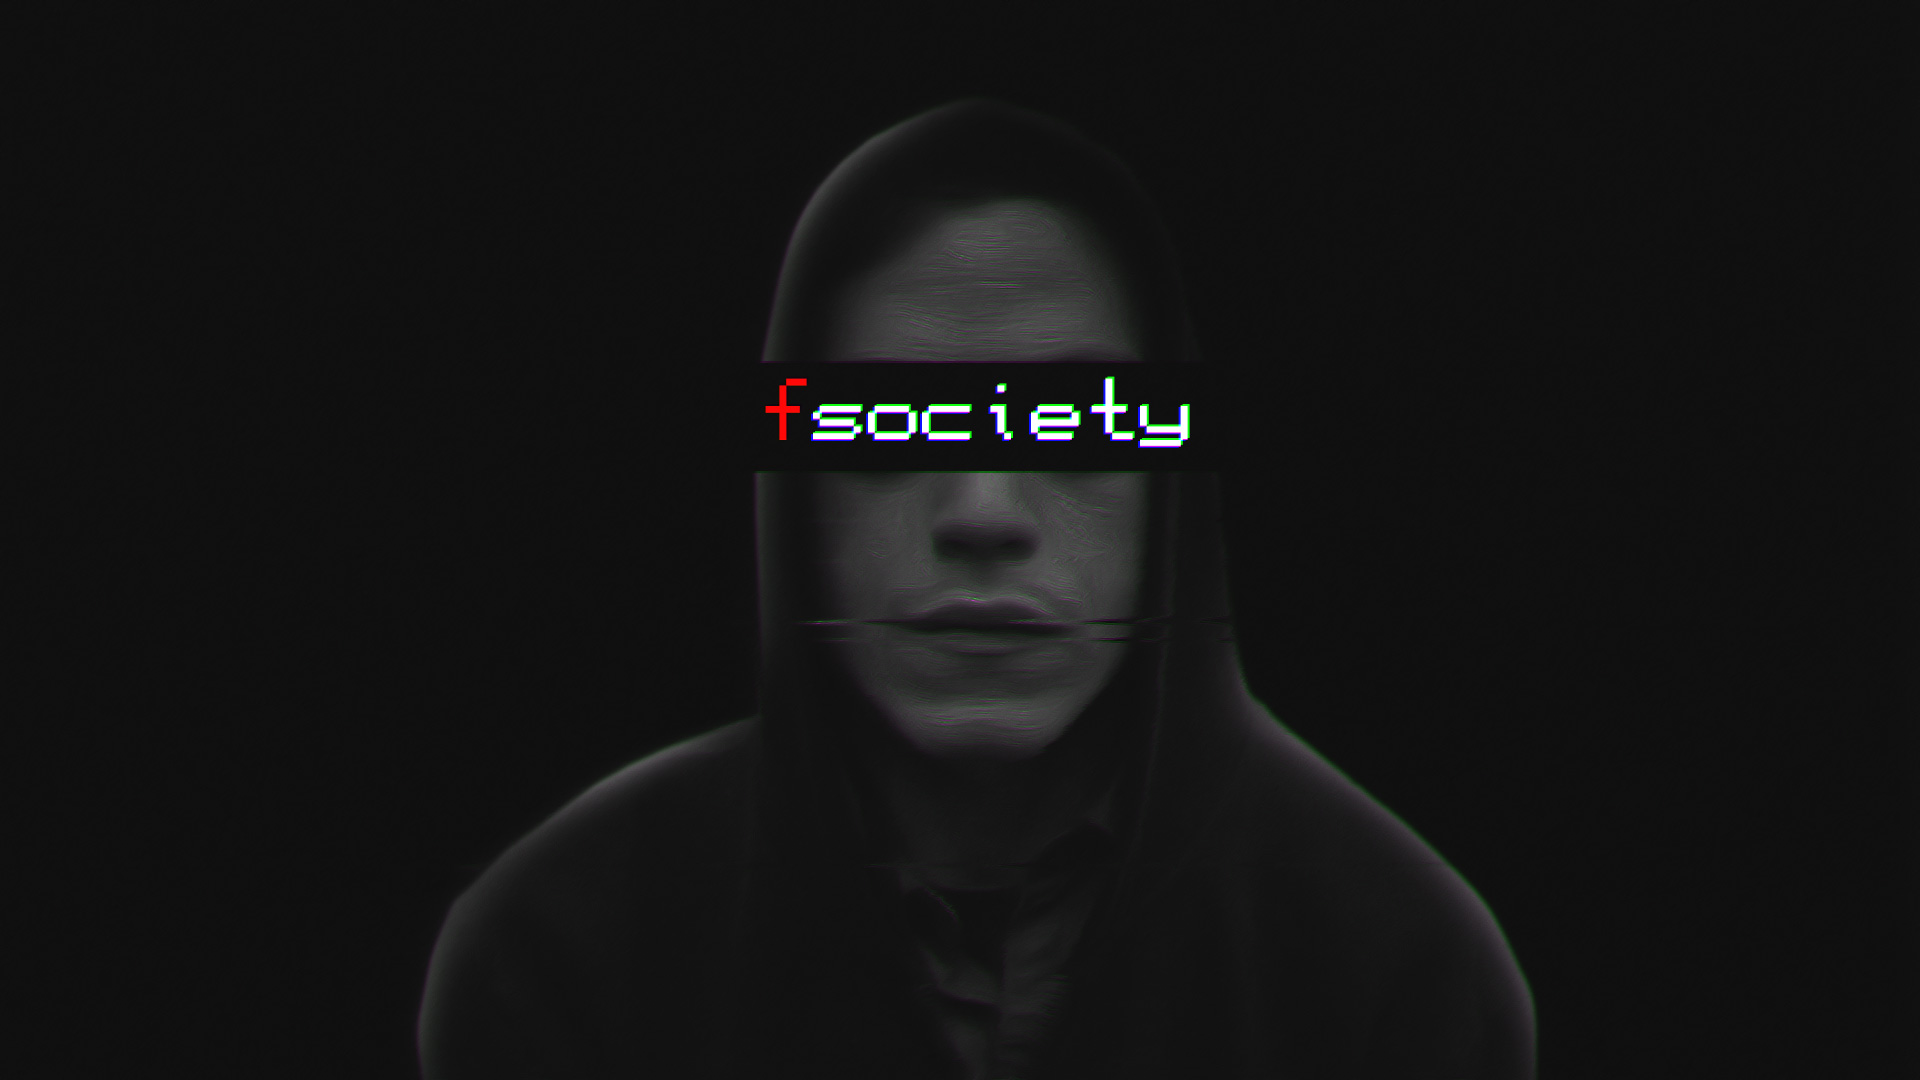 Hacker Wallpaper Hd 1366x768 Fsociety Mr Robot Hd Tv Shows 4k Wallpapers Images